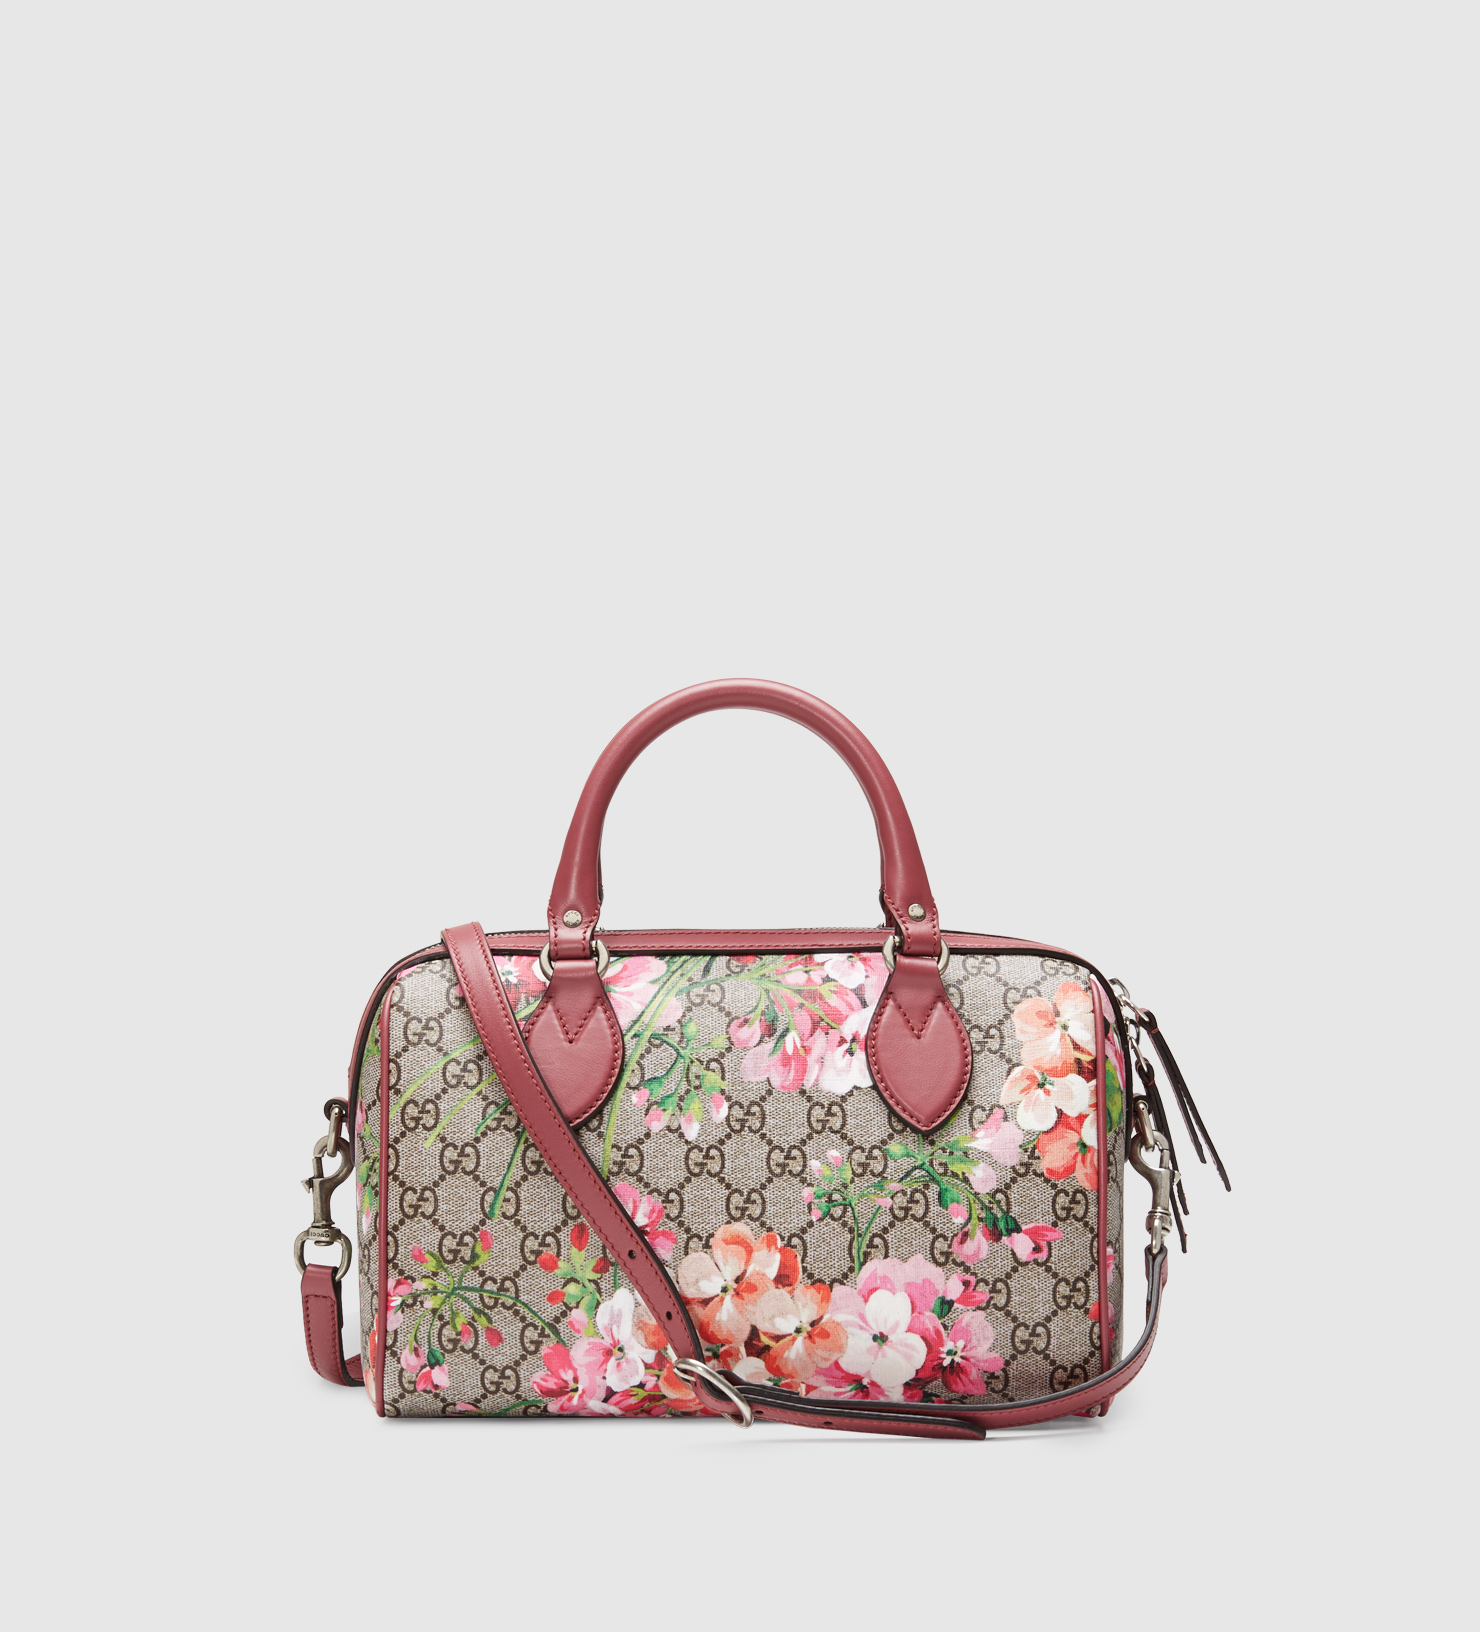 4db7bfd8d6d54b Gucci Blooms Gg Supreme Top Handle Bag in Purple - Lyst